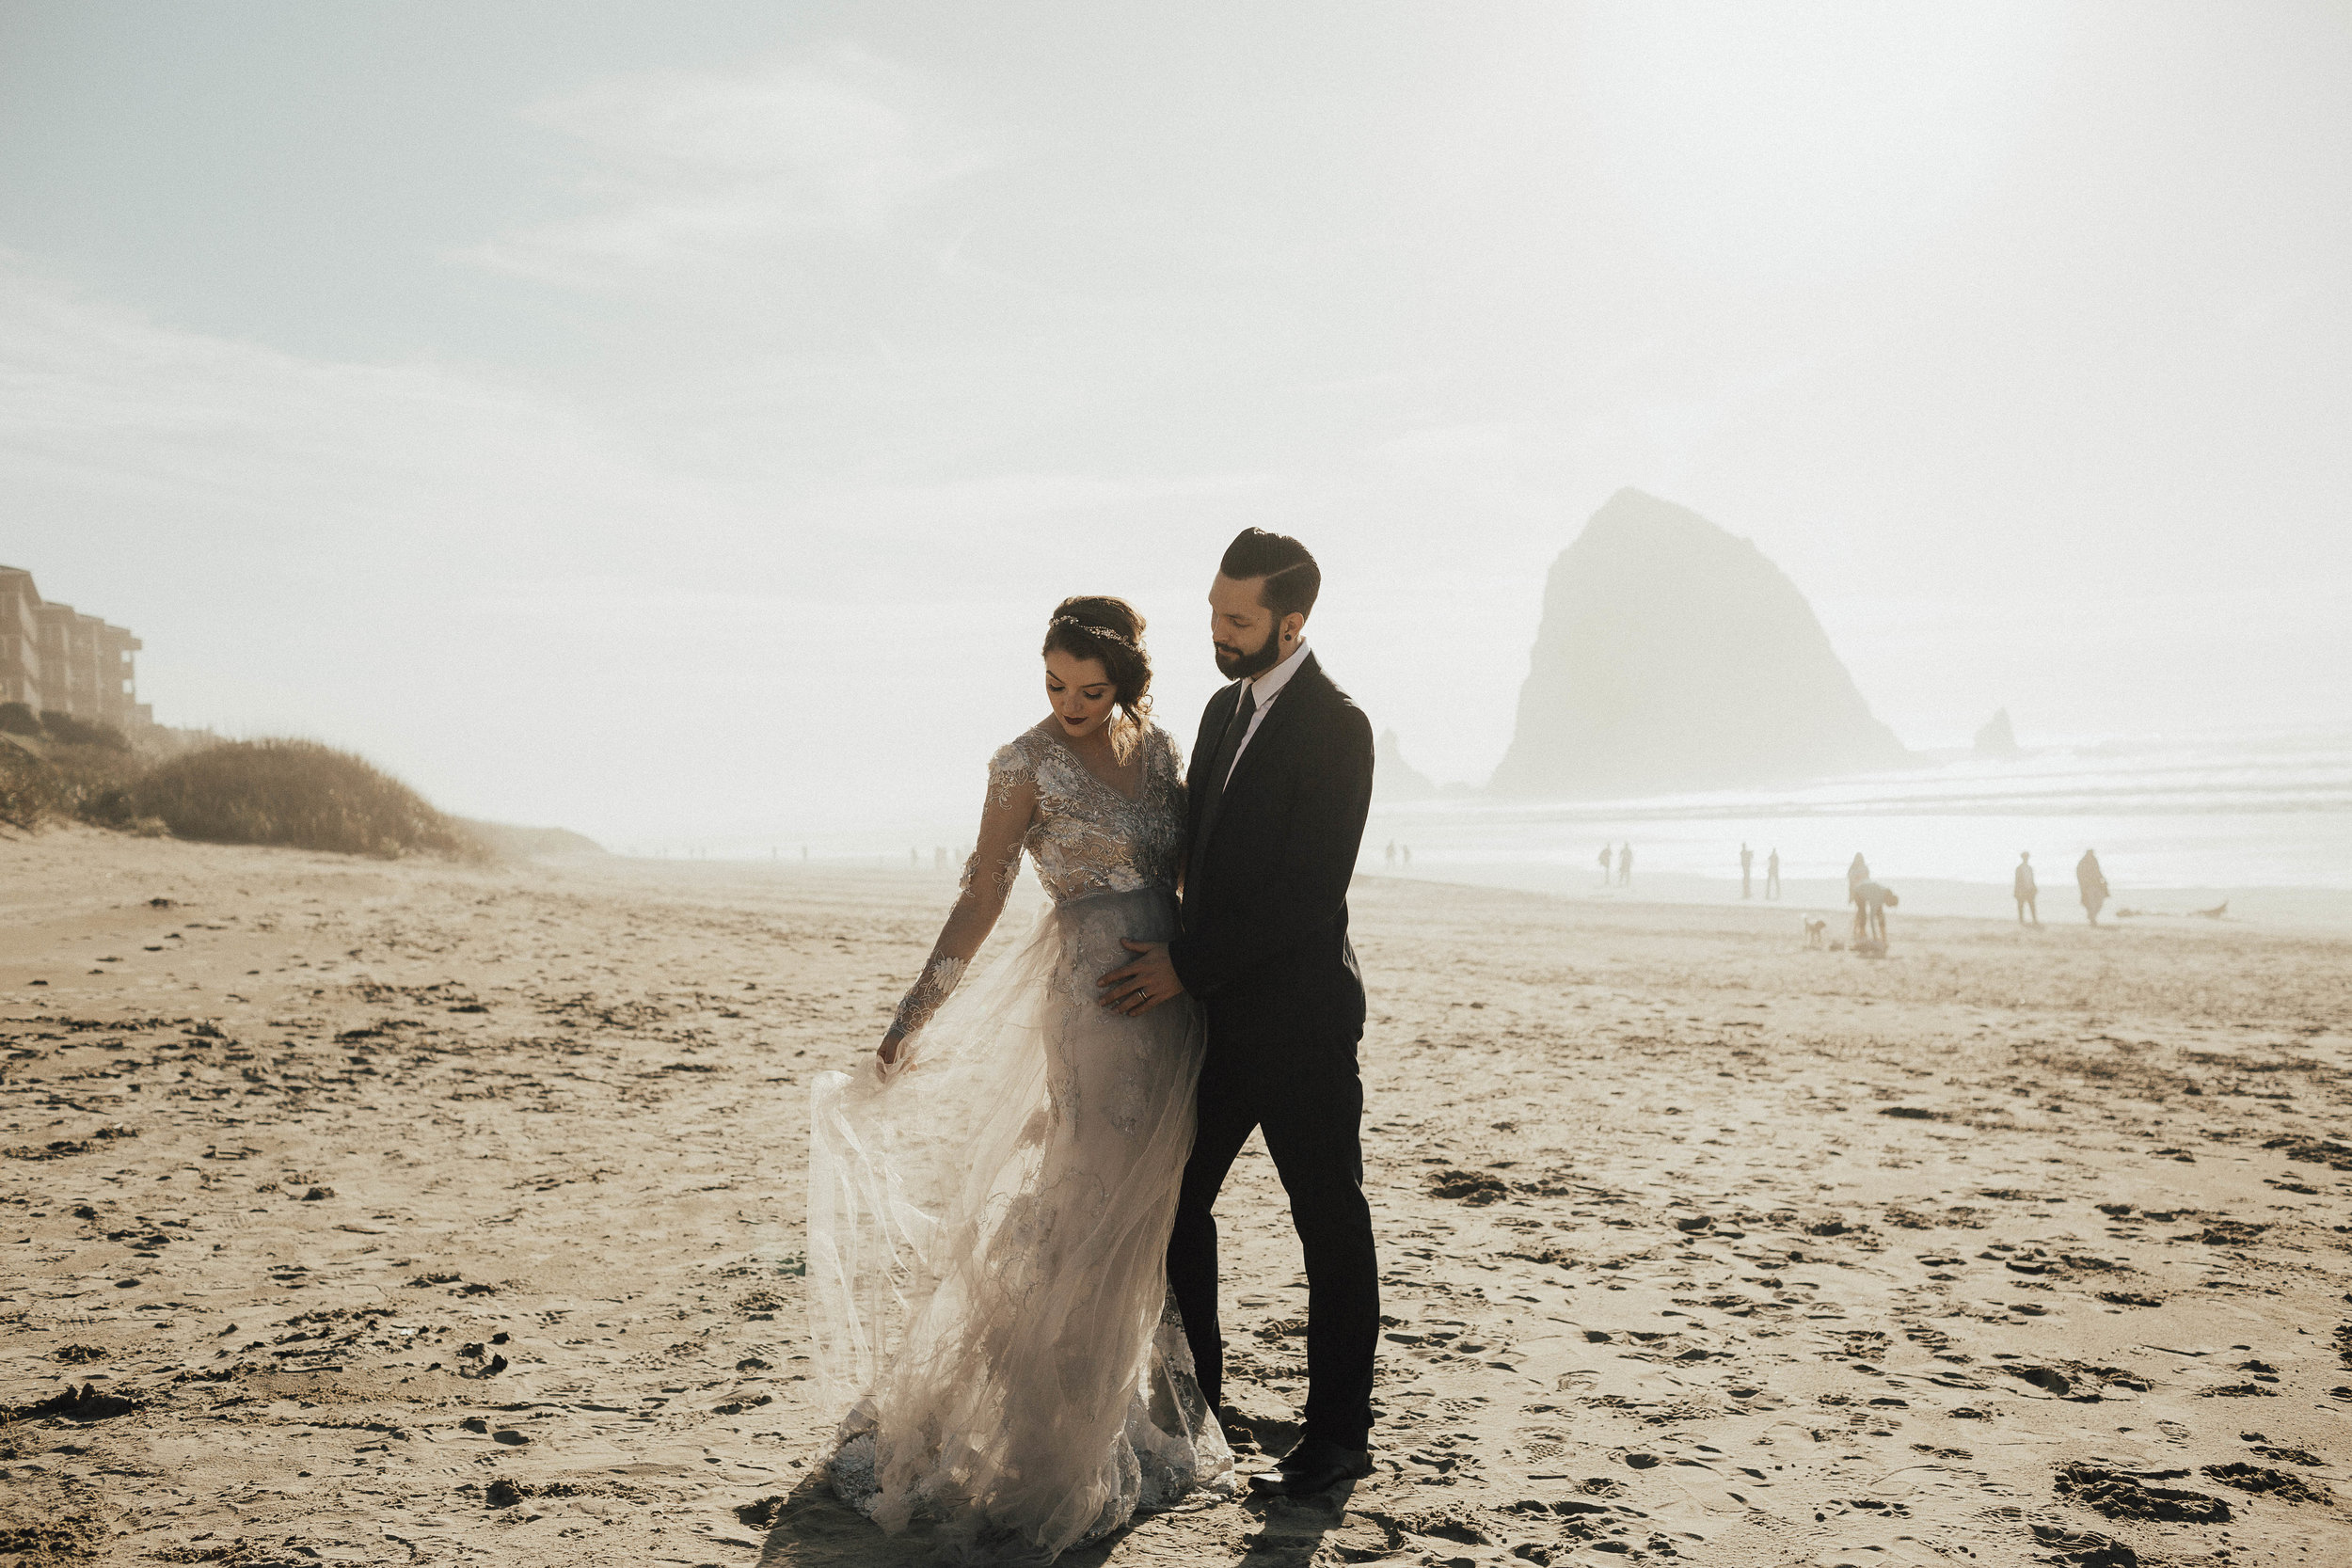 Cannon Beach Elopement - Michelle Larmand Photography - 042